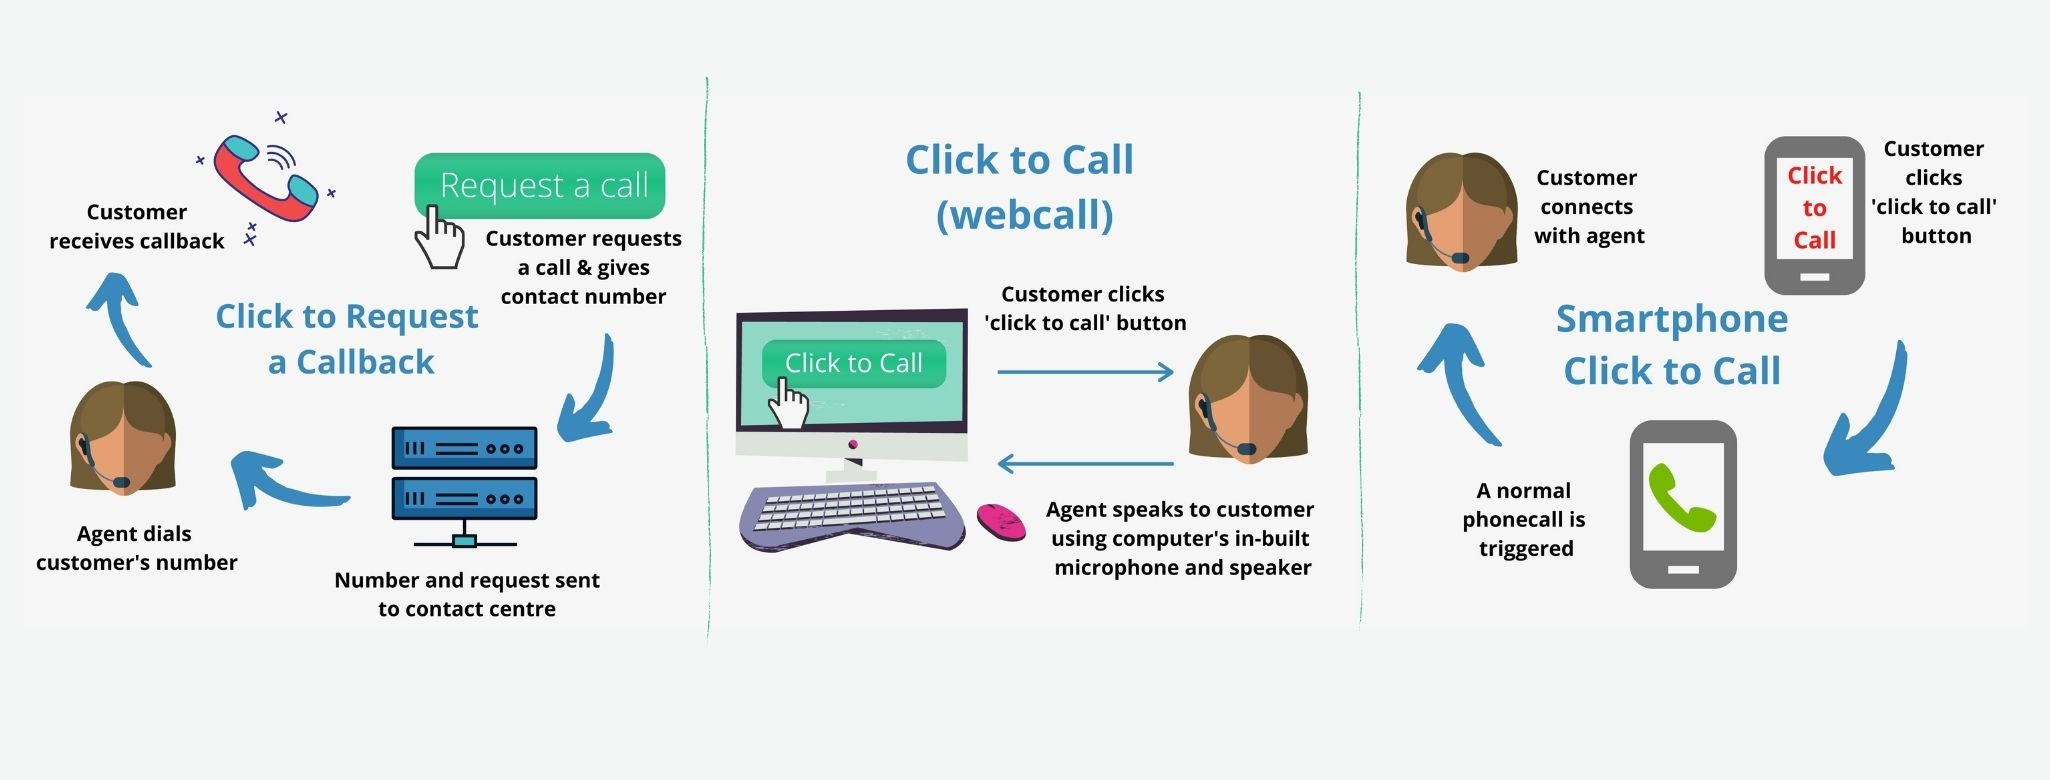 3 types of click to call